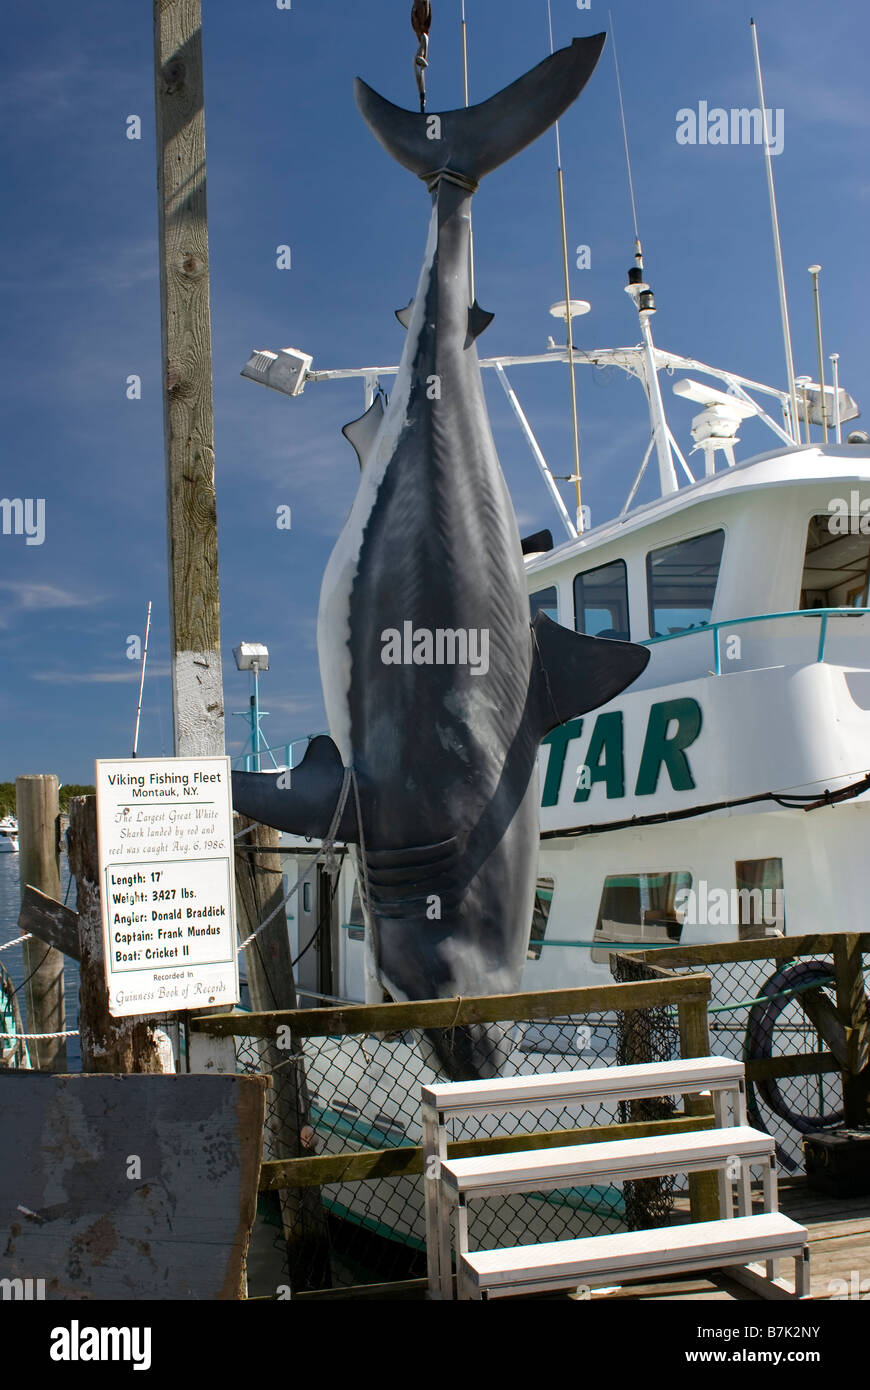 Replica of world 39 s biggest shark caught by rod and reel for Montauk shark fishing